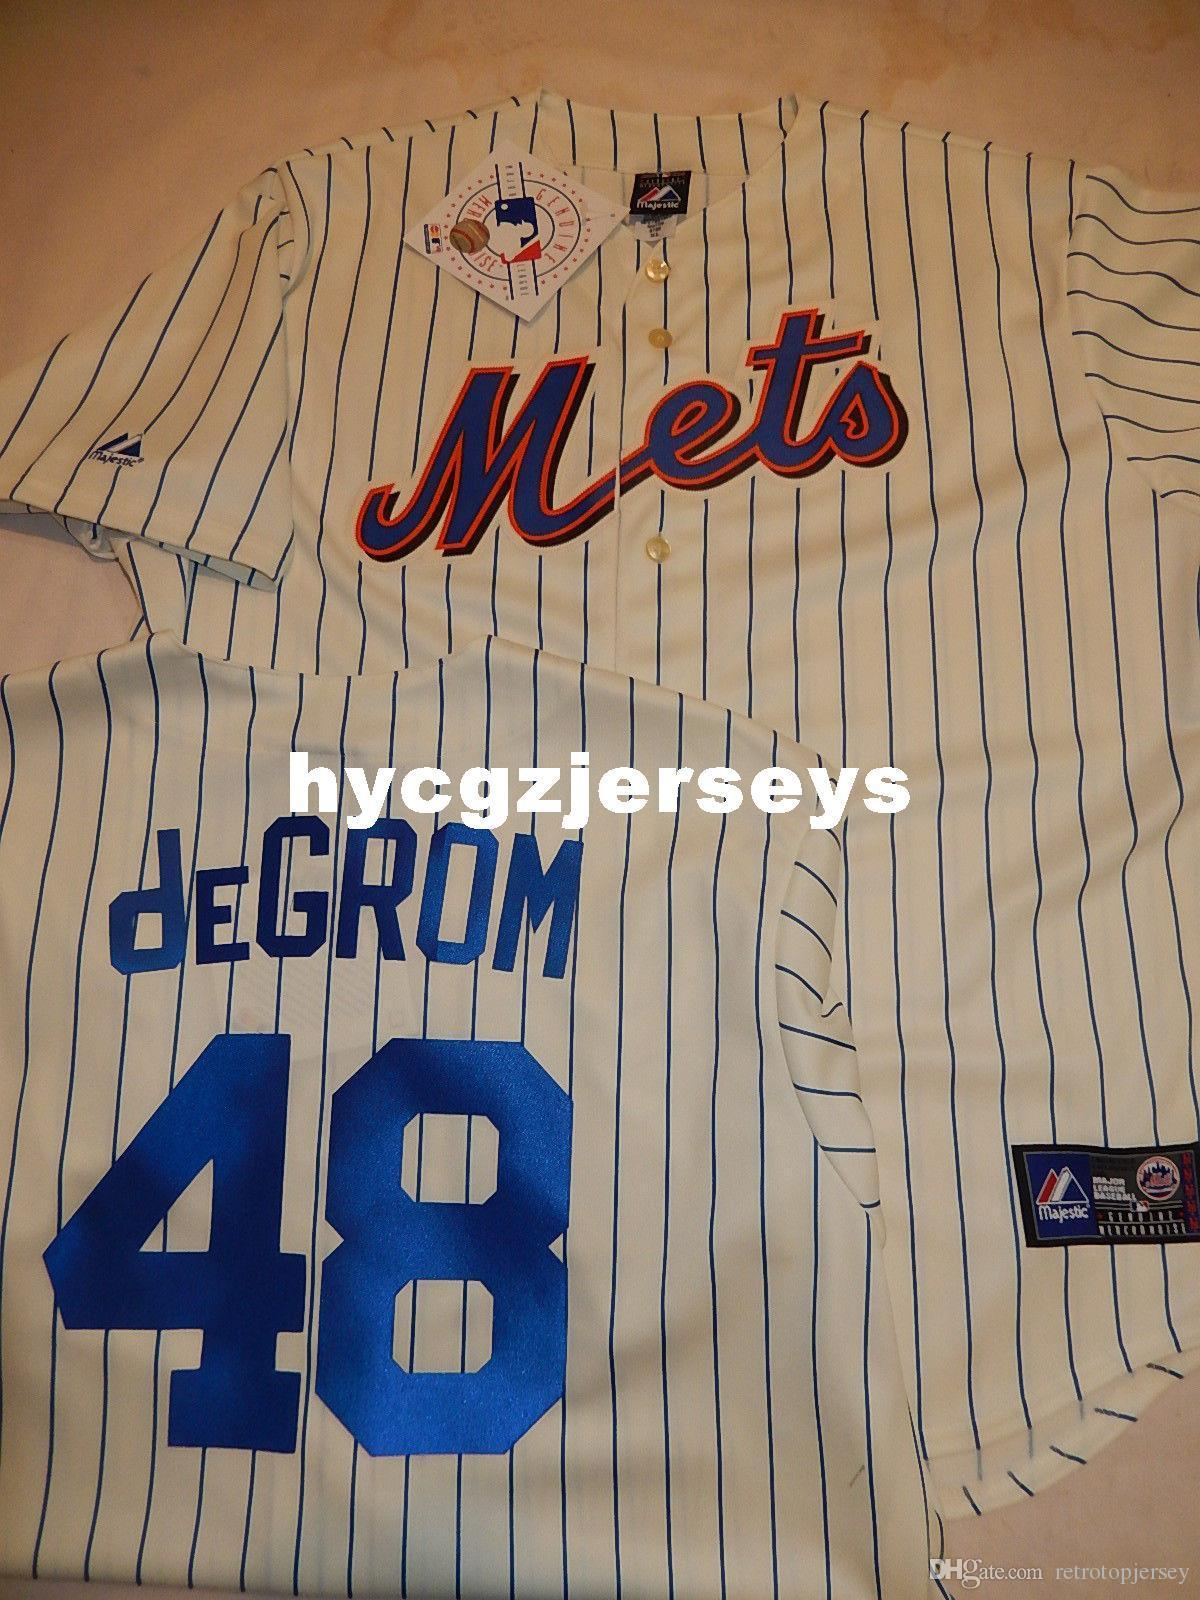 baseball pas cher Hommes Top NY # 48 Jacob deGrom chemise JERSEY CRÈME NOUVEAU Mens cousu jerseys Big and Tall TAILLE XS-6XL A vendre